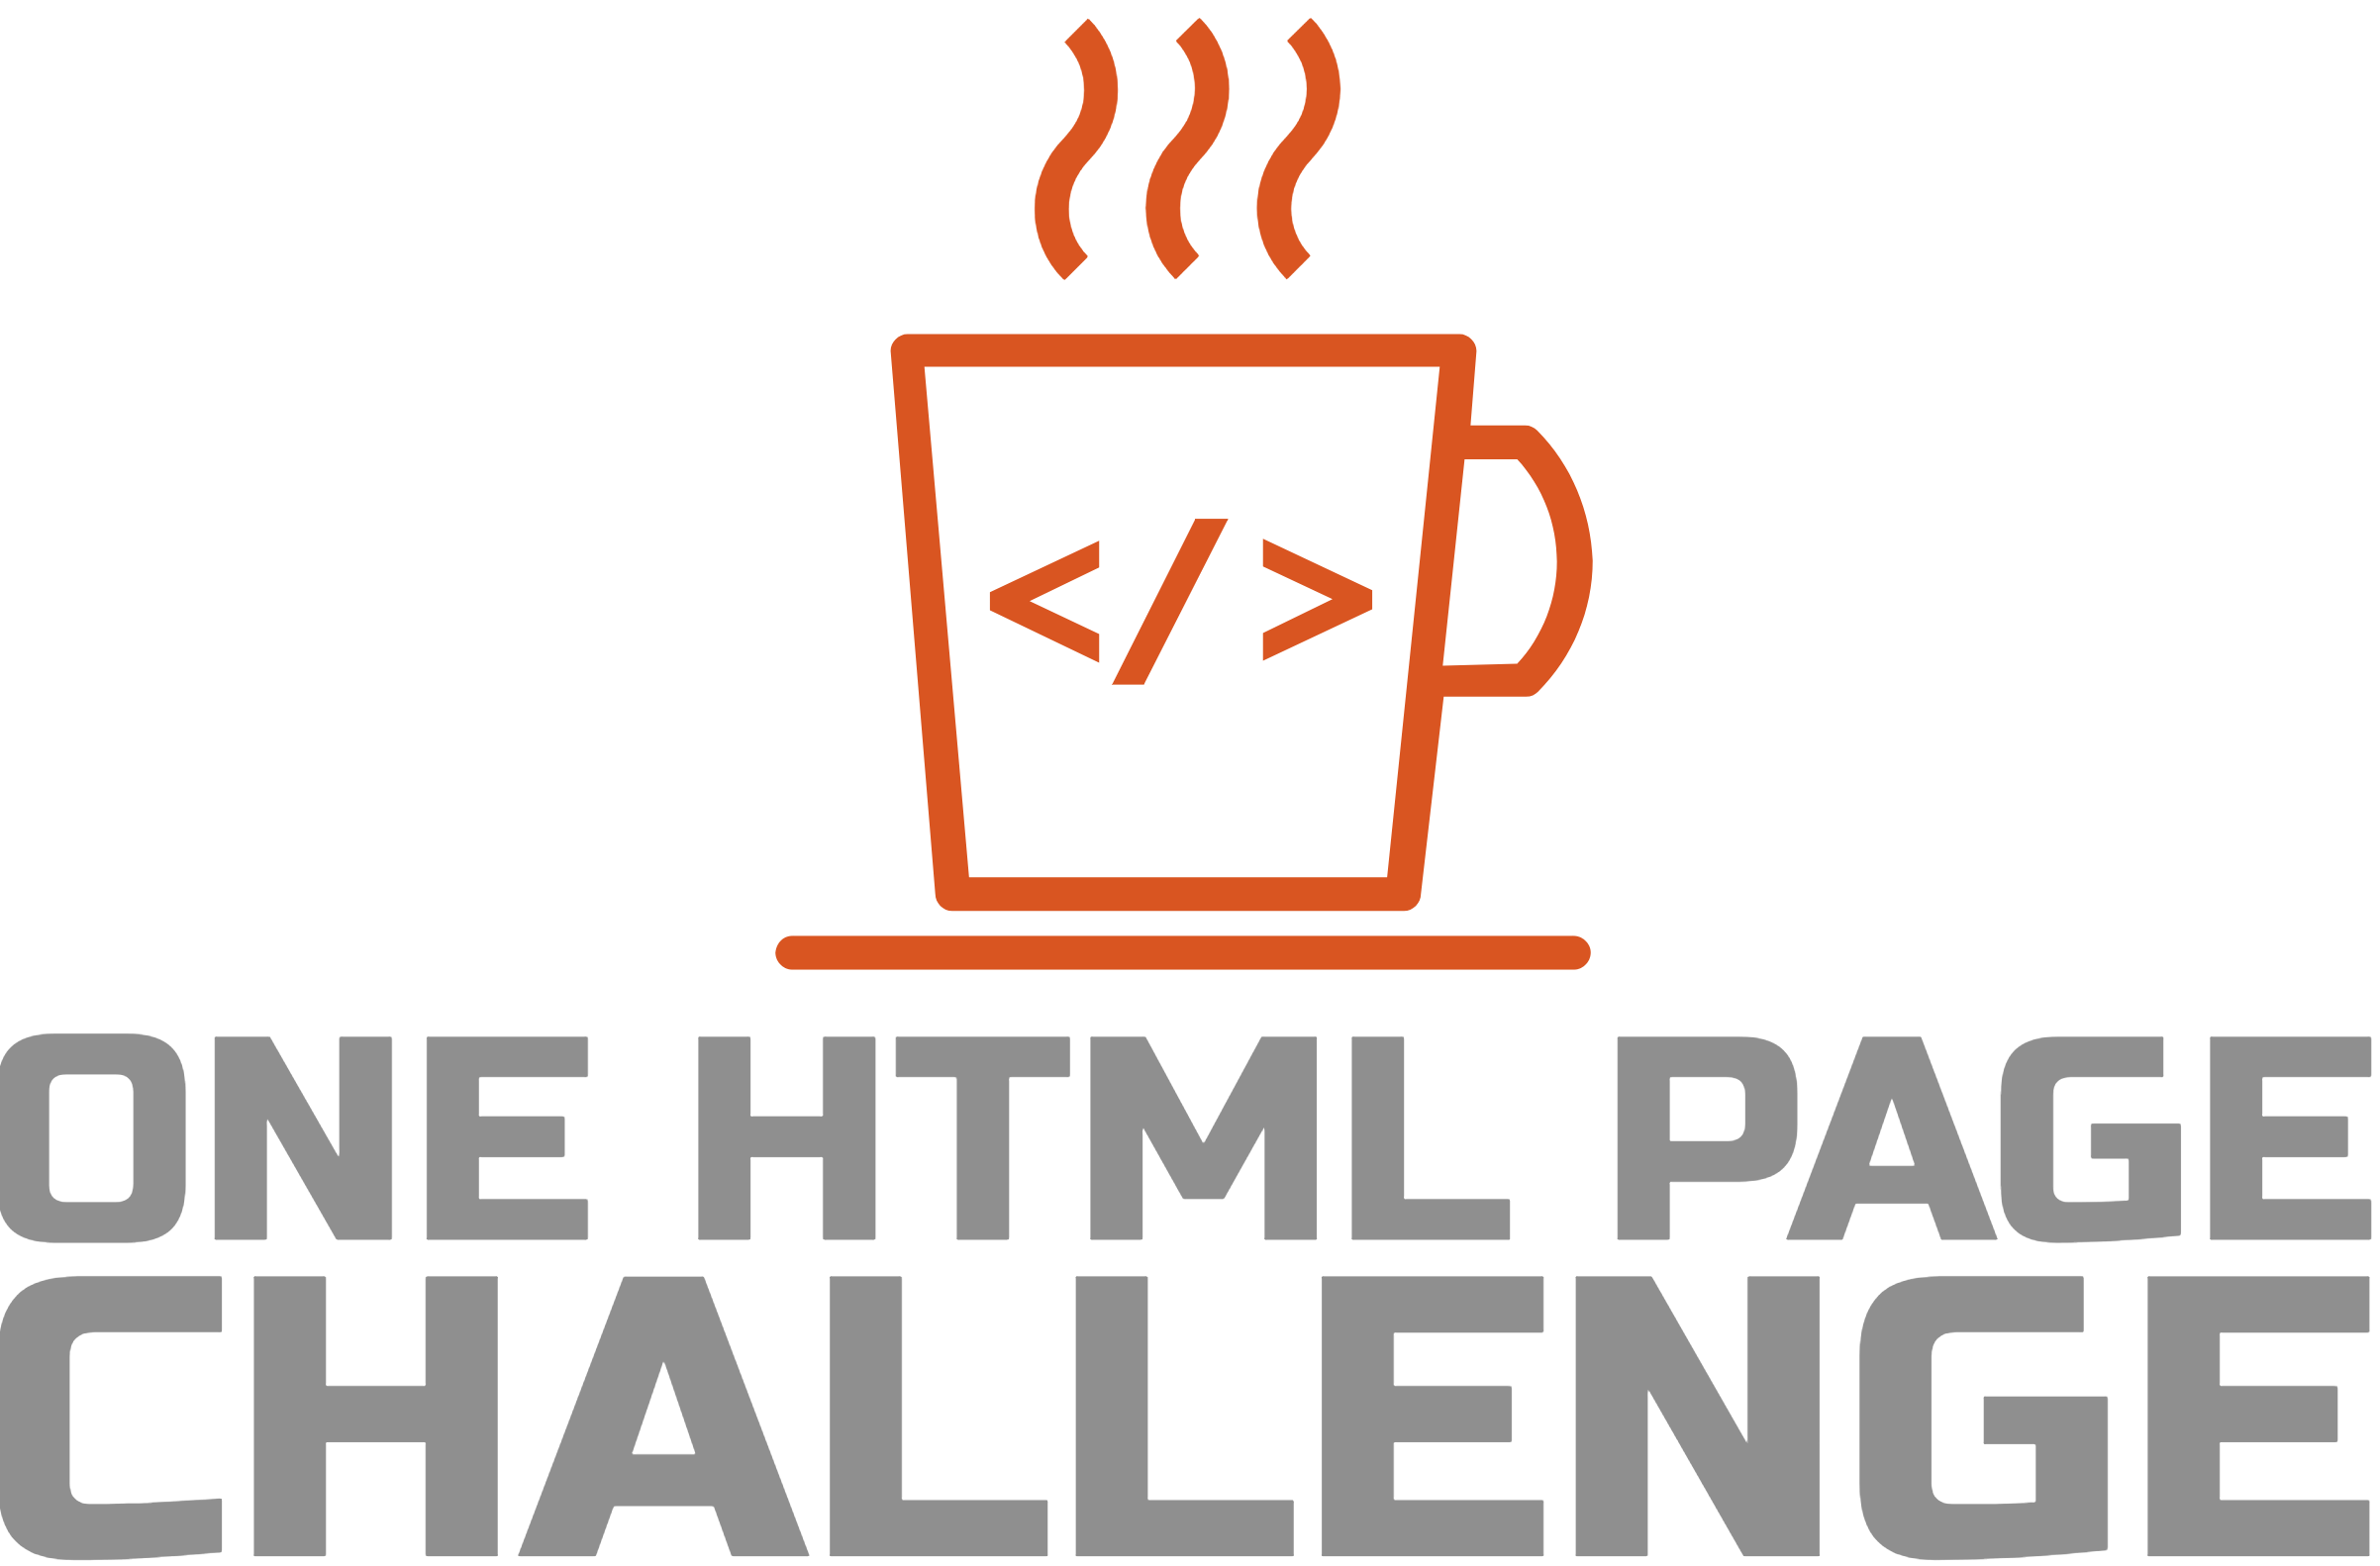 One HTML Page Challenge